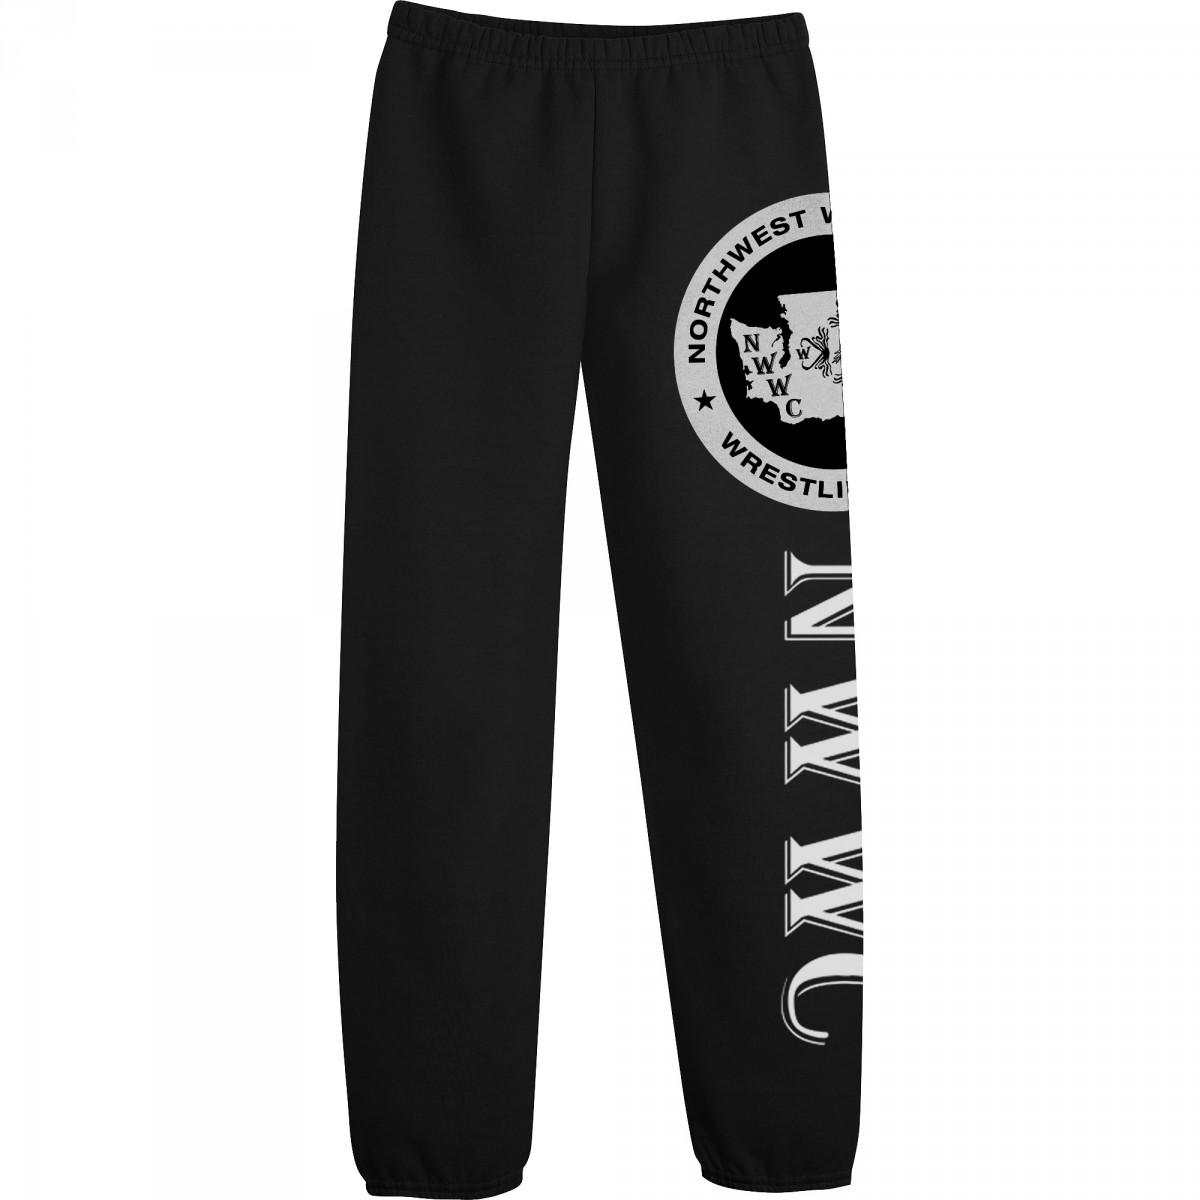 NWWC Black Sweatpants White Logo-Black-L